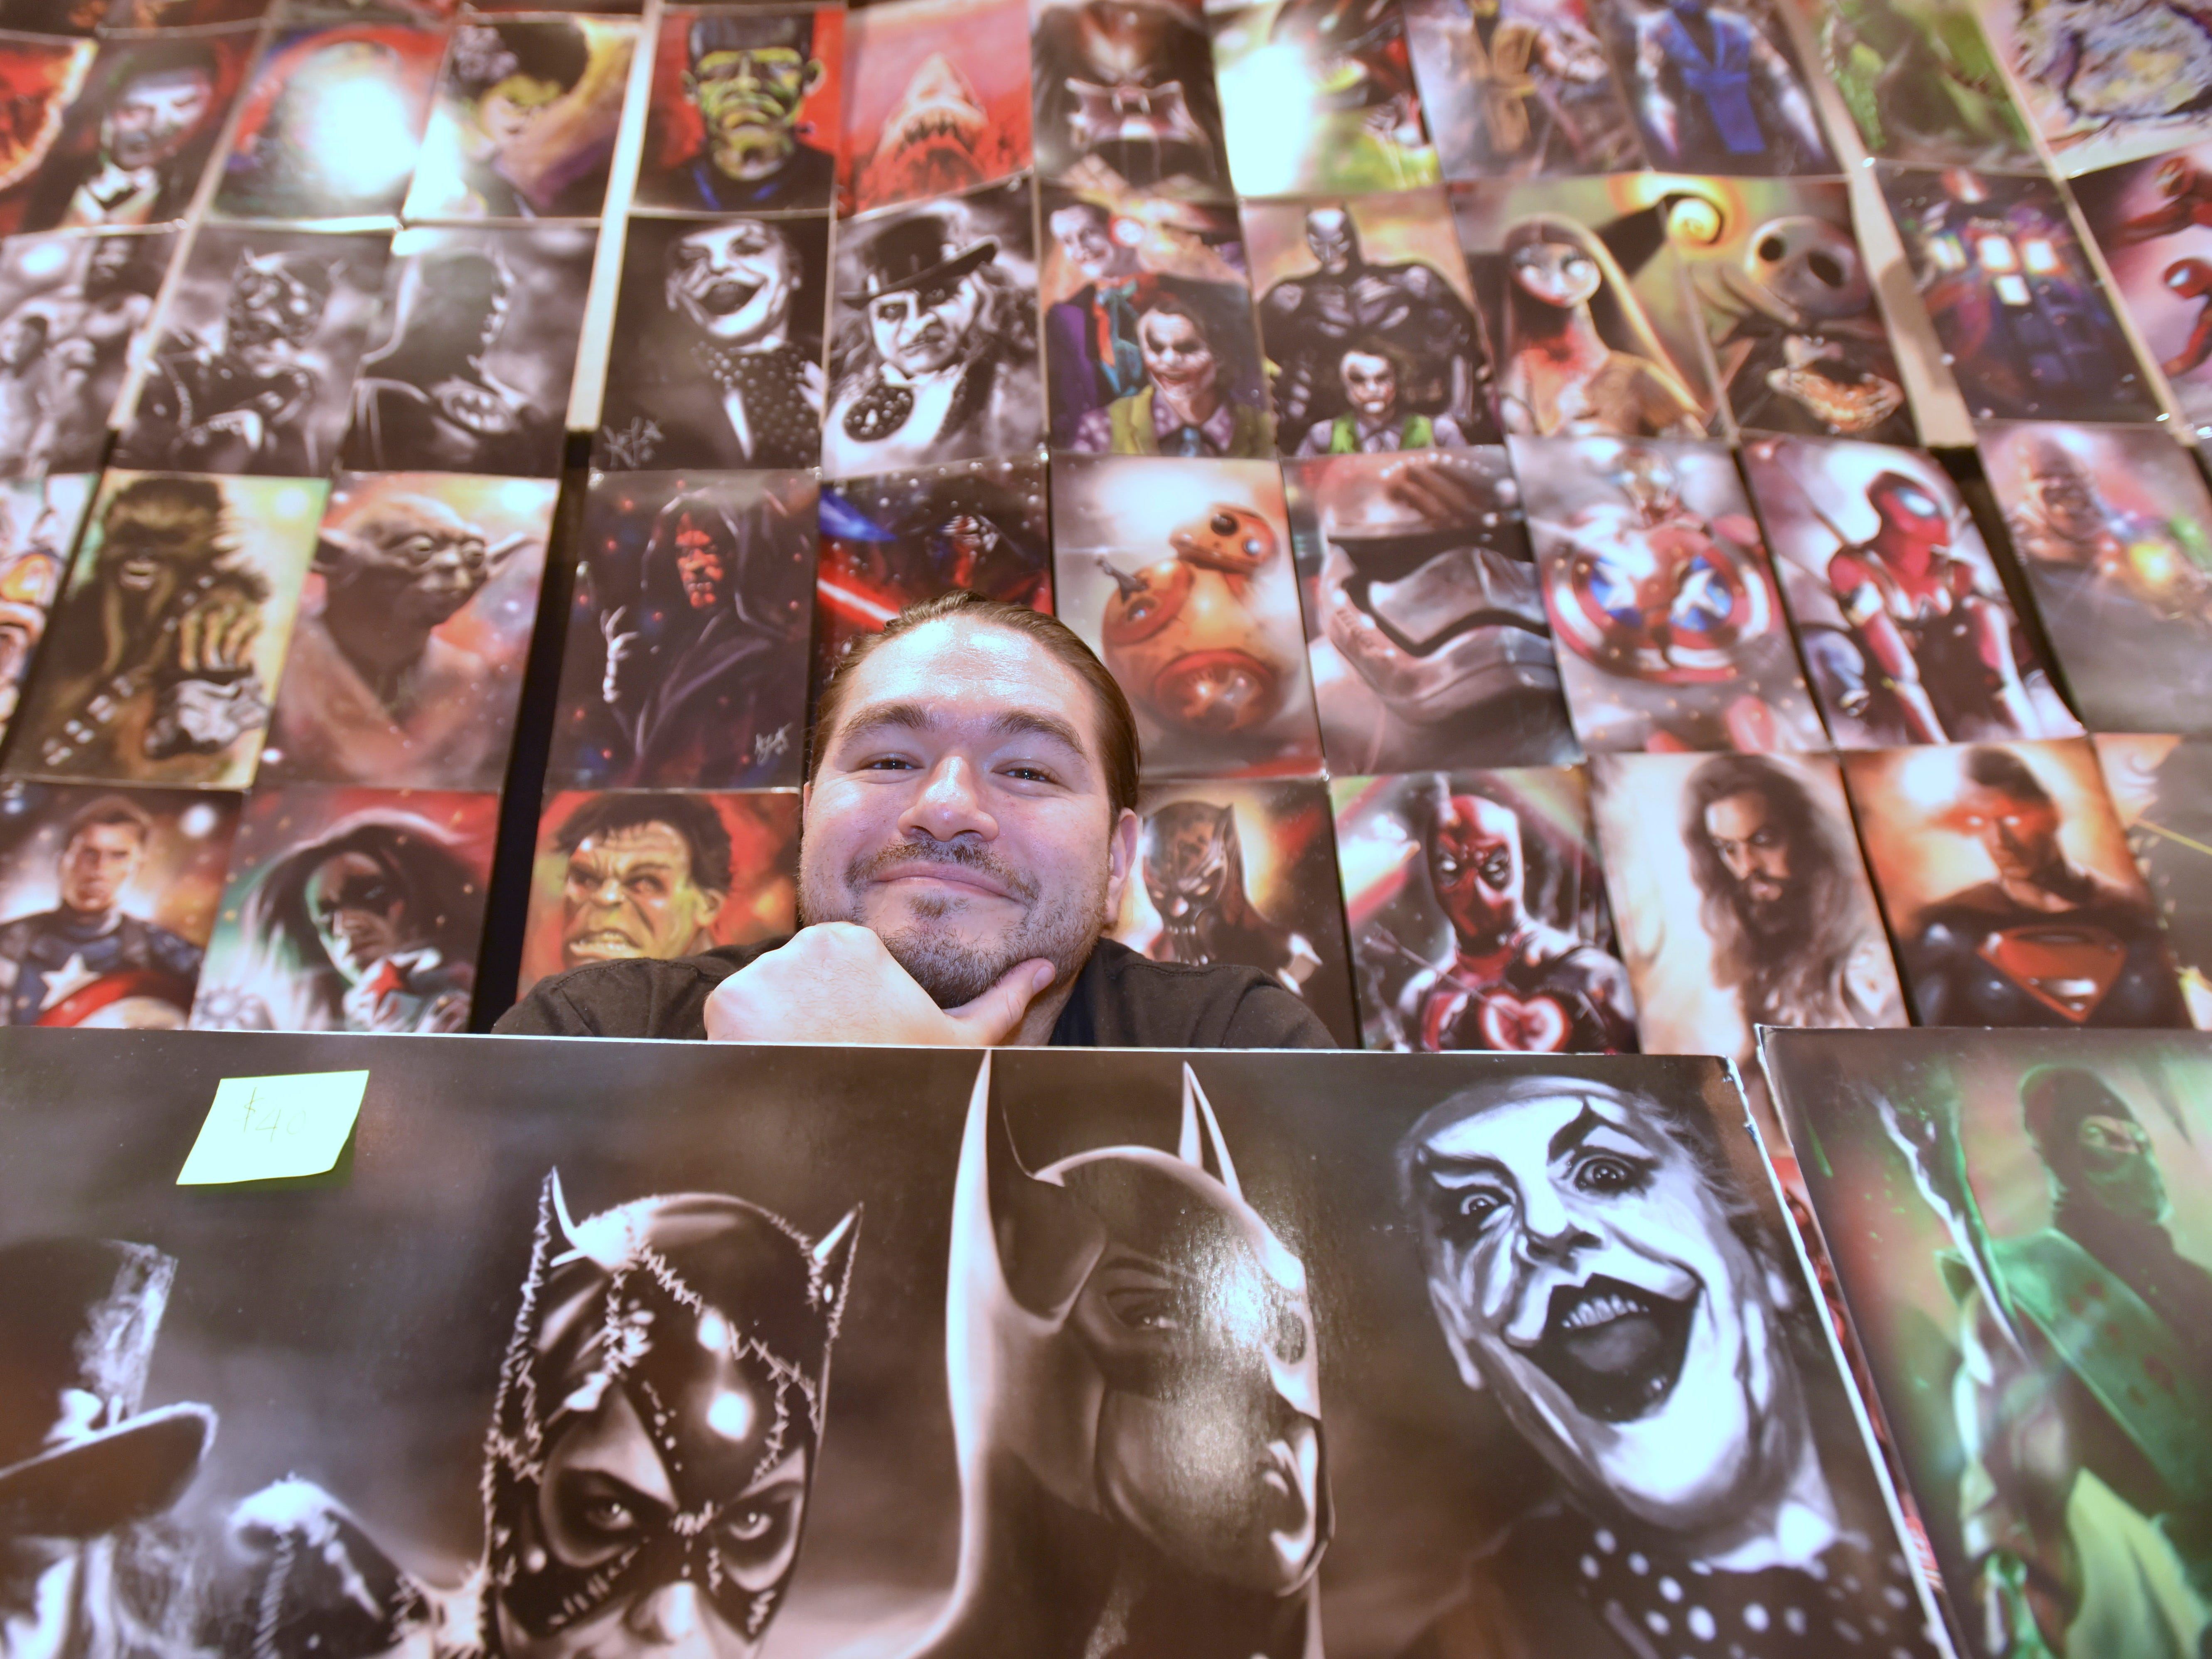 Comic book cover artist Aaron Lambert, 35, of Cincinnati, Ohio, poses with more than 100 paintings for sale at his booth, Saturday. He has created at least 10 comic book covers.